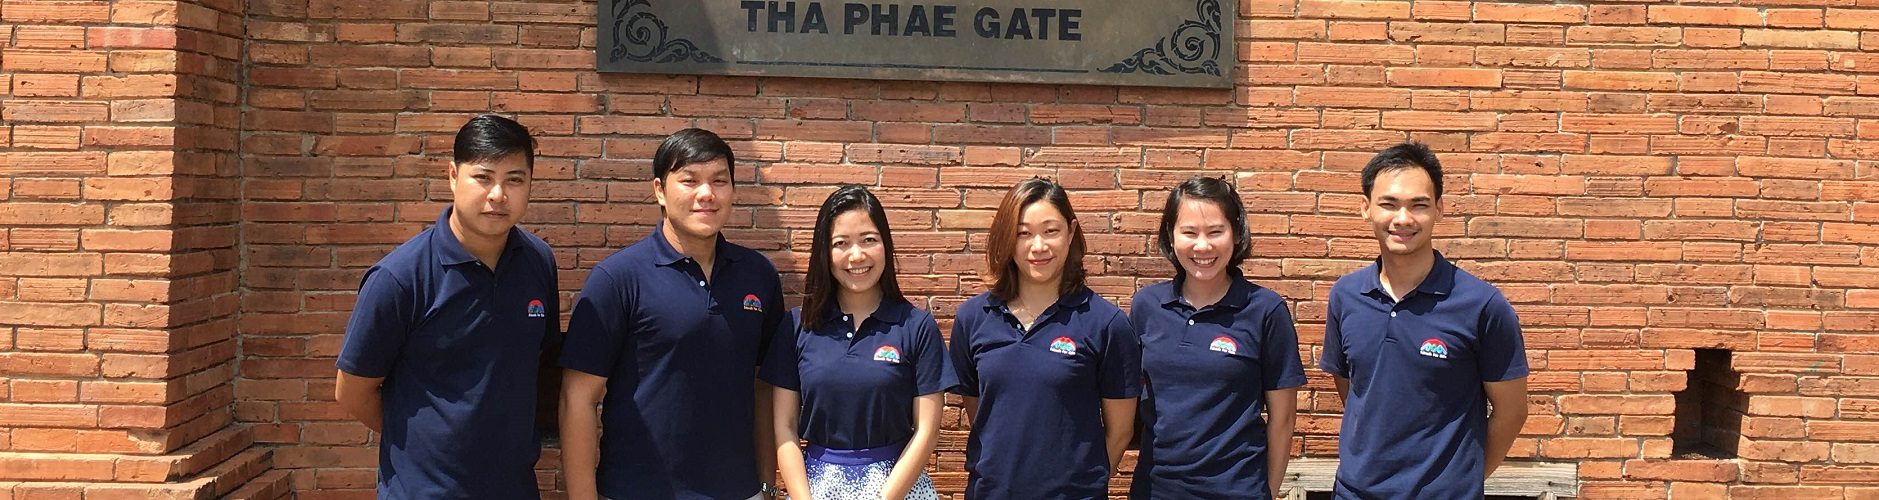 chiang-mai-thailand-volunteer-coordinating-staff